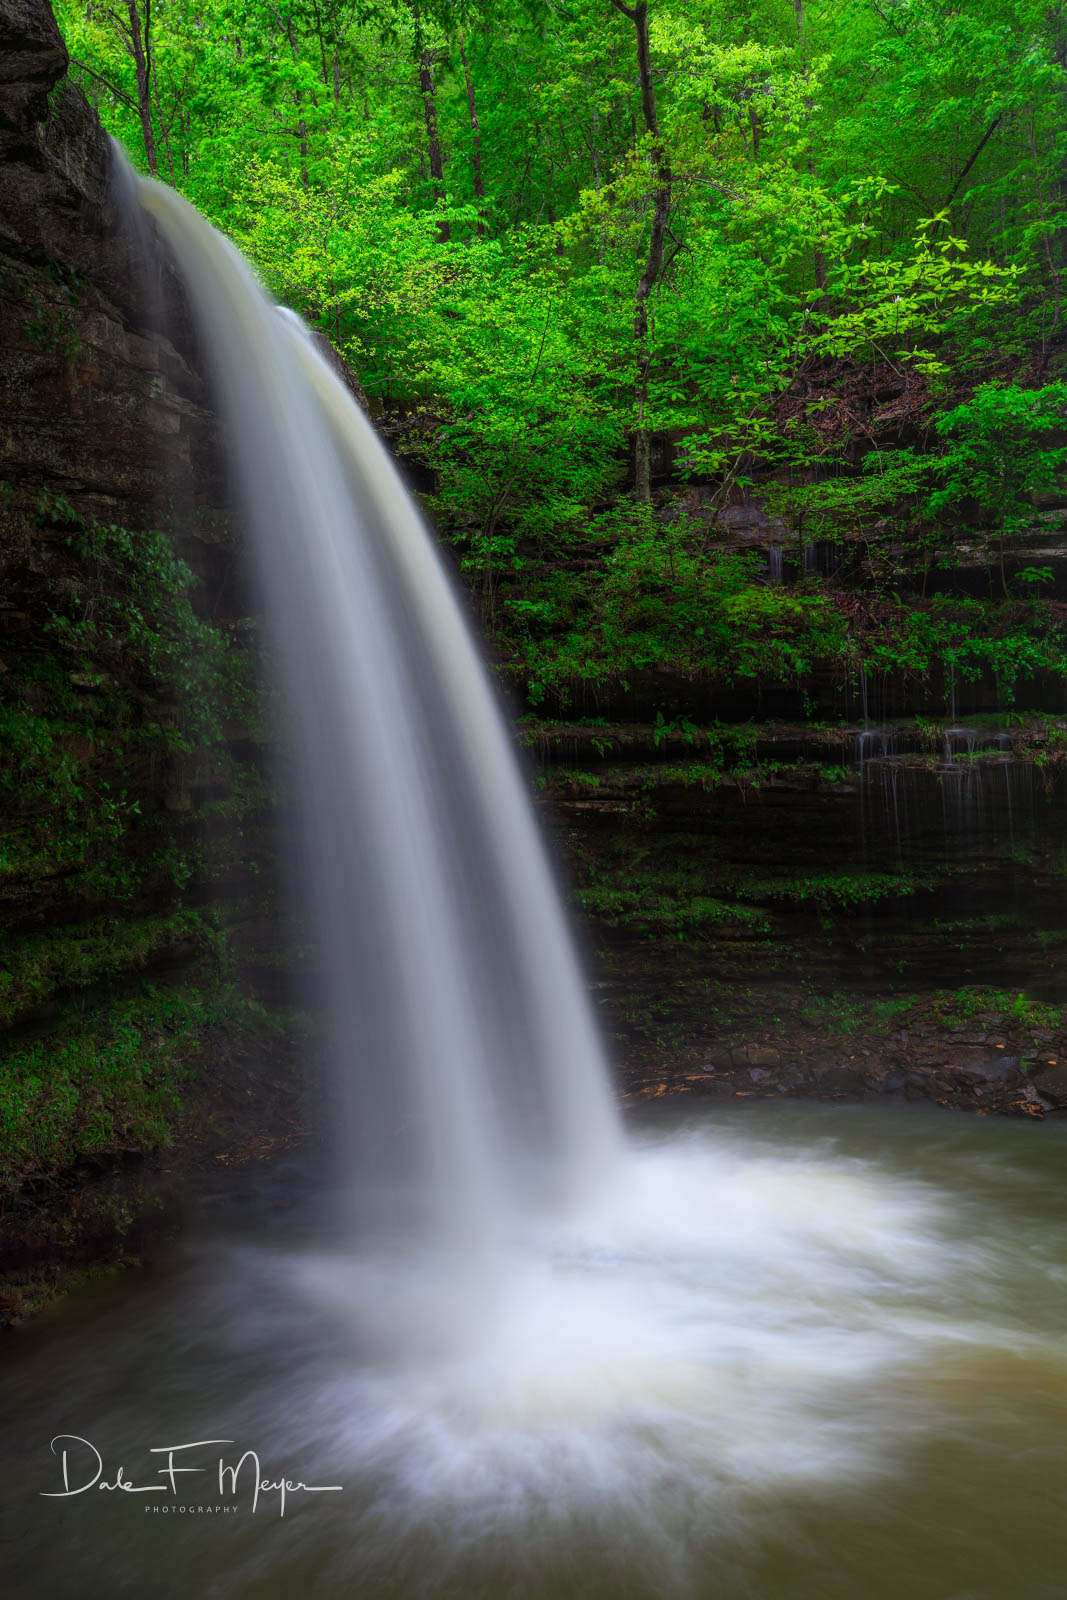 Comptons Falls, Spring 2017, Upper Buffalo Wilderness Area, rivers streams and waterfalls gallerie, waterfall, photo